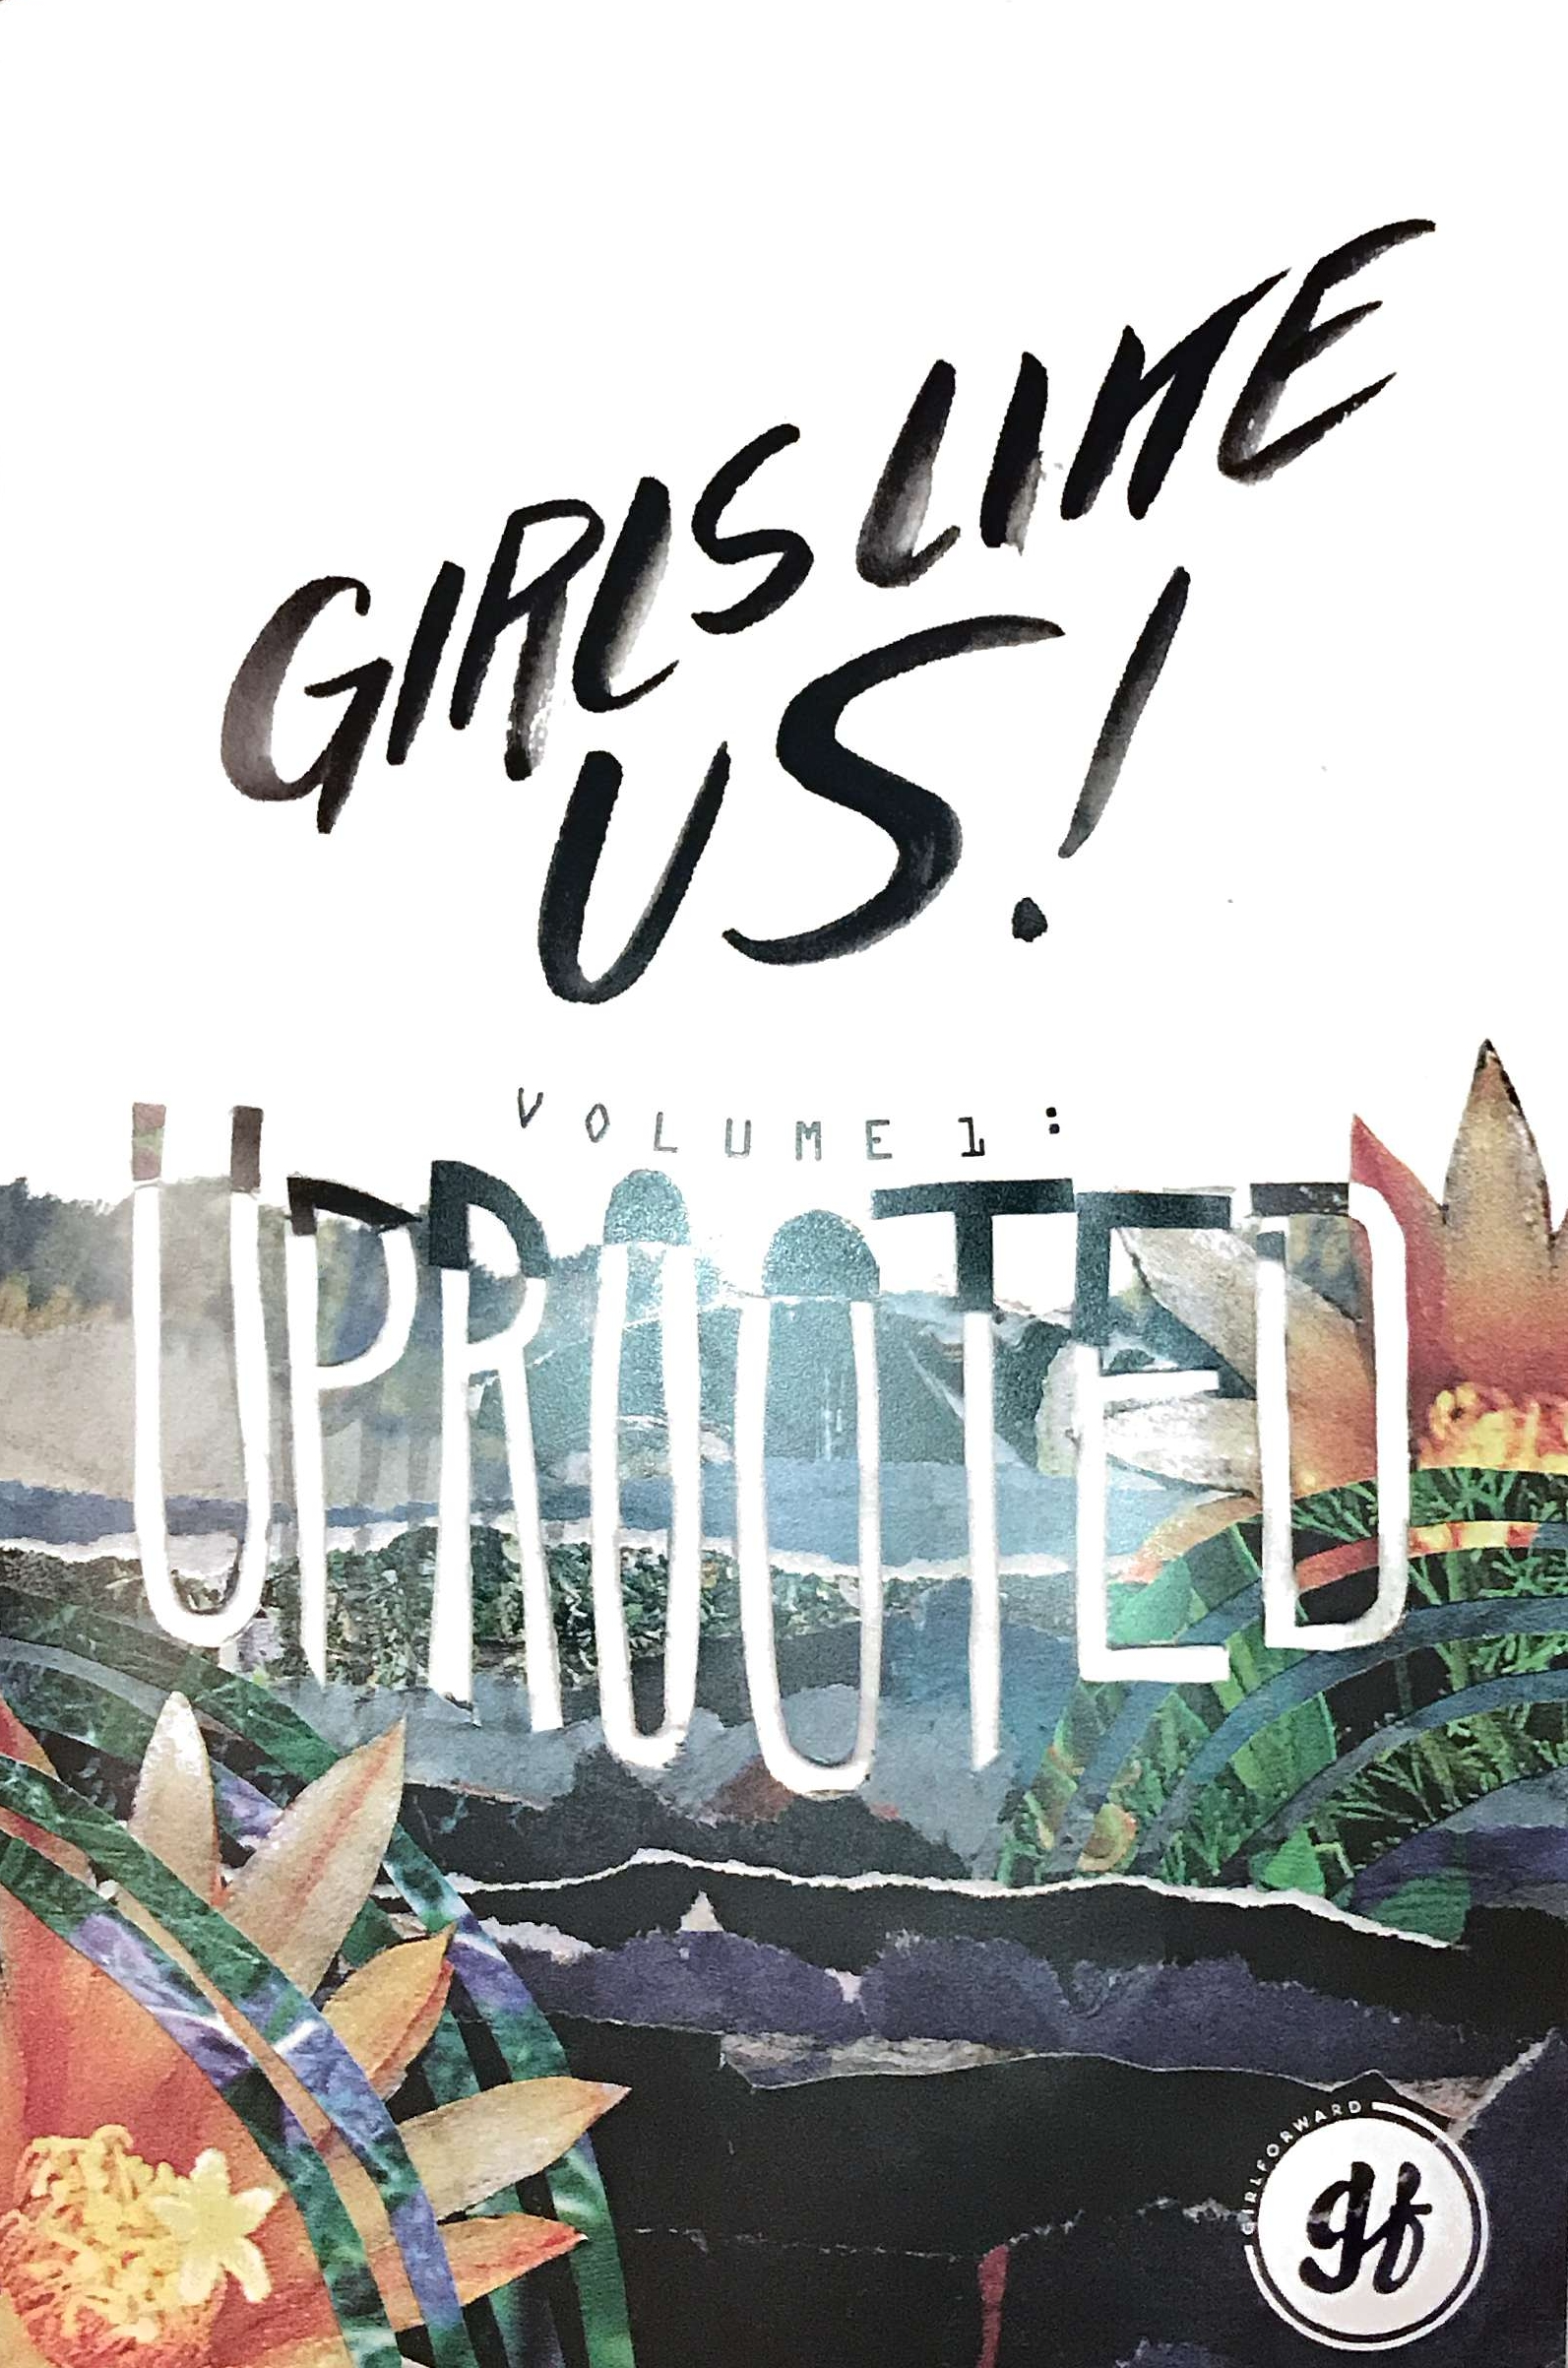 Girls Like Us: Uprooted - Girls Like Us: Uprooted is the first ever GirlForward zine, created by GirlForward girls. Learn about what 2017 meant to us and what it means to be